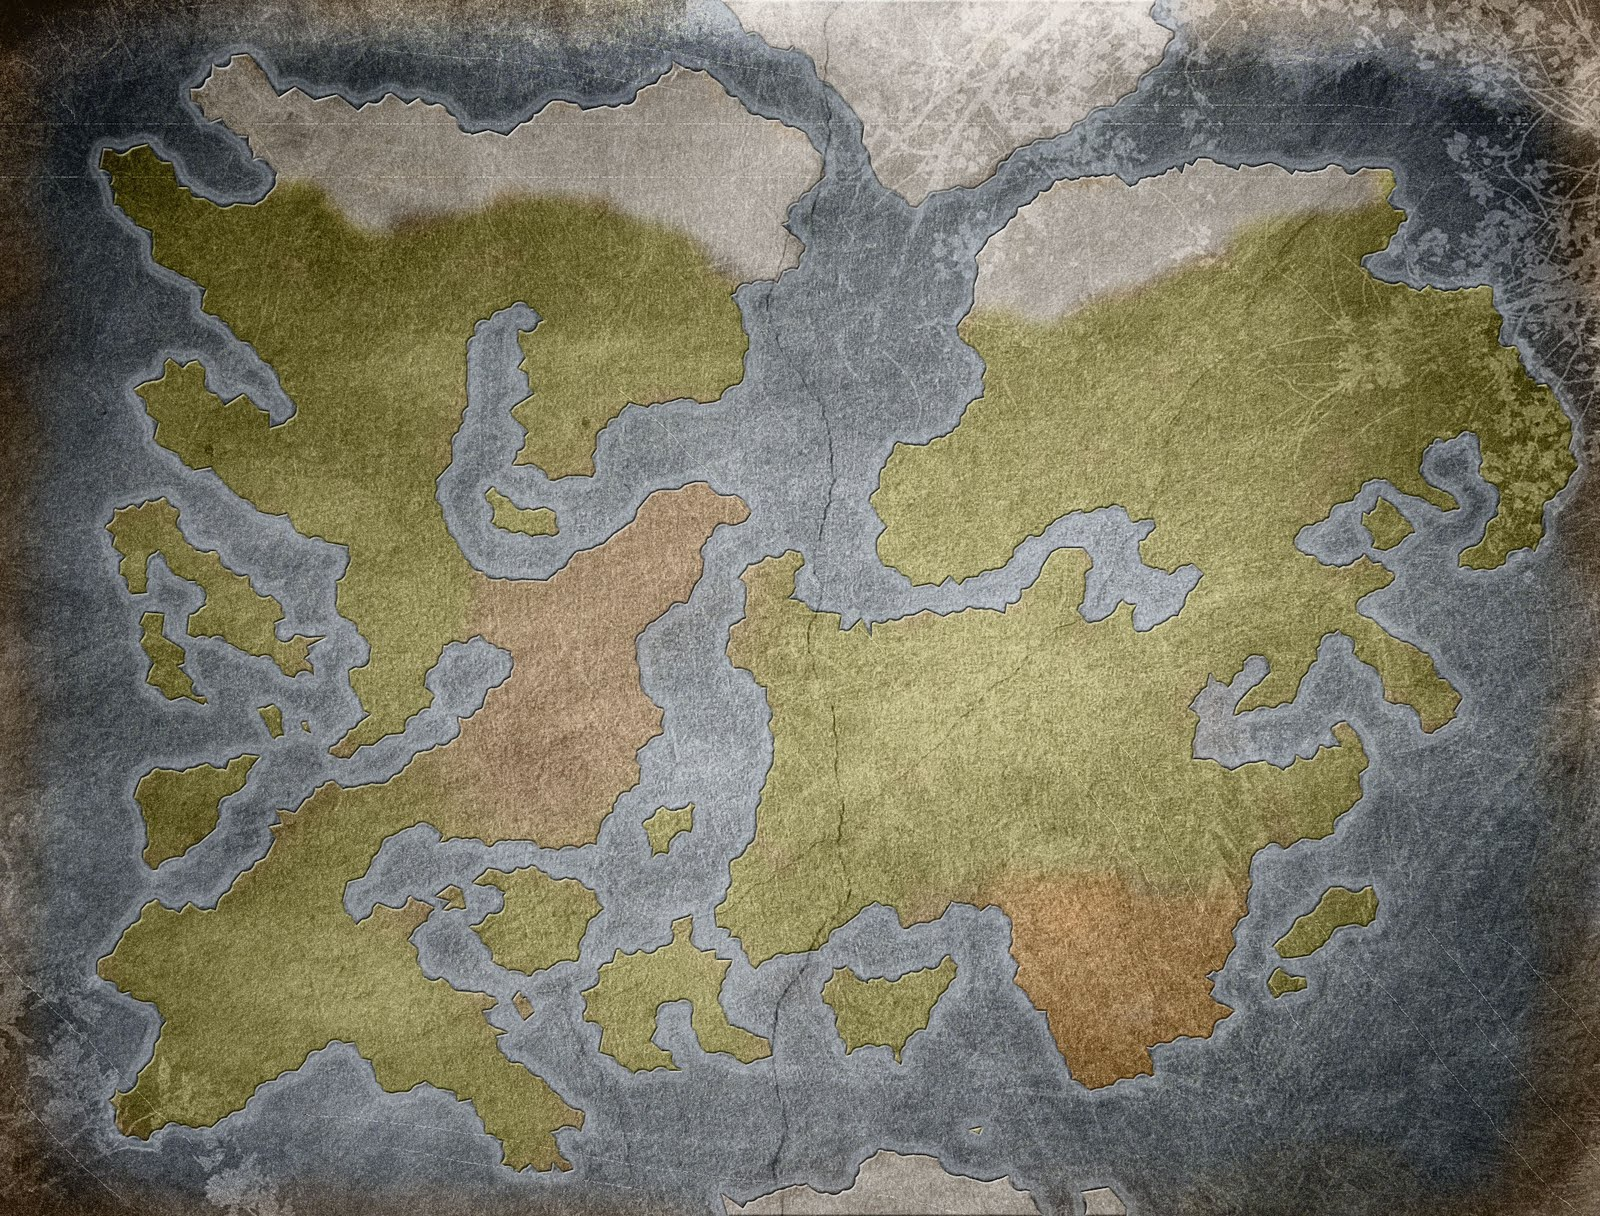 Rogues do it from behind cartography blank world map 1 the first of many blank world maps to come i will post in the future some map symbols that you could use to fill up the blank maps so stay tuned gumiabroncs Choice Image